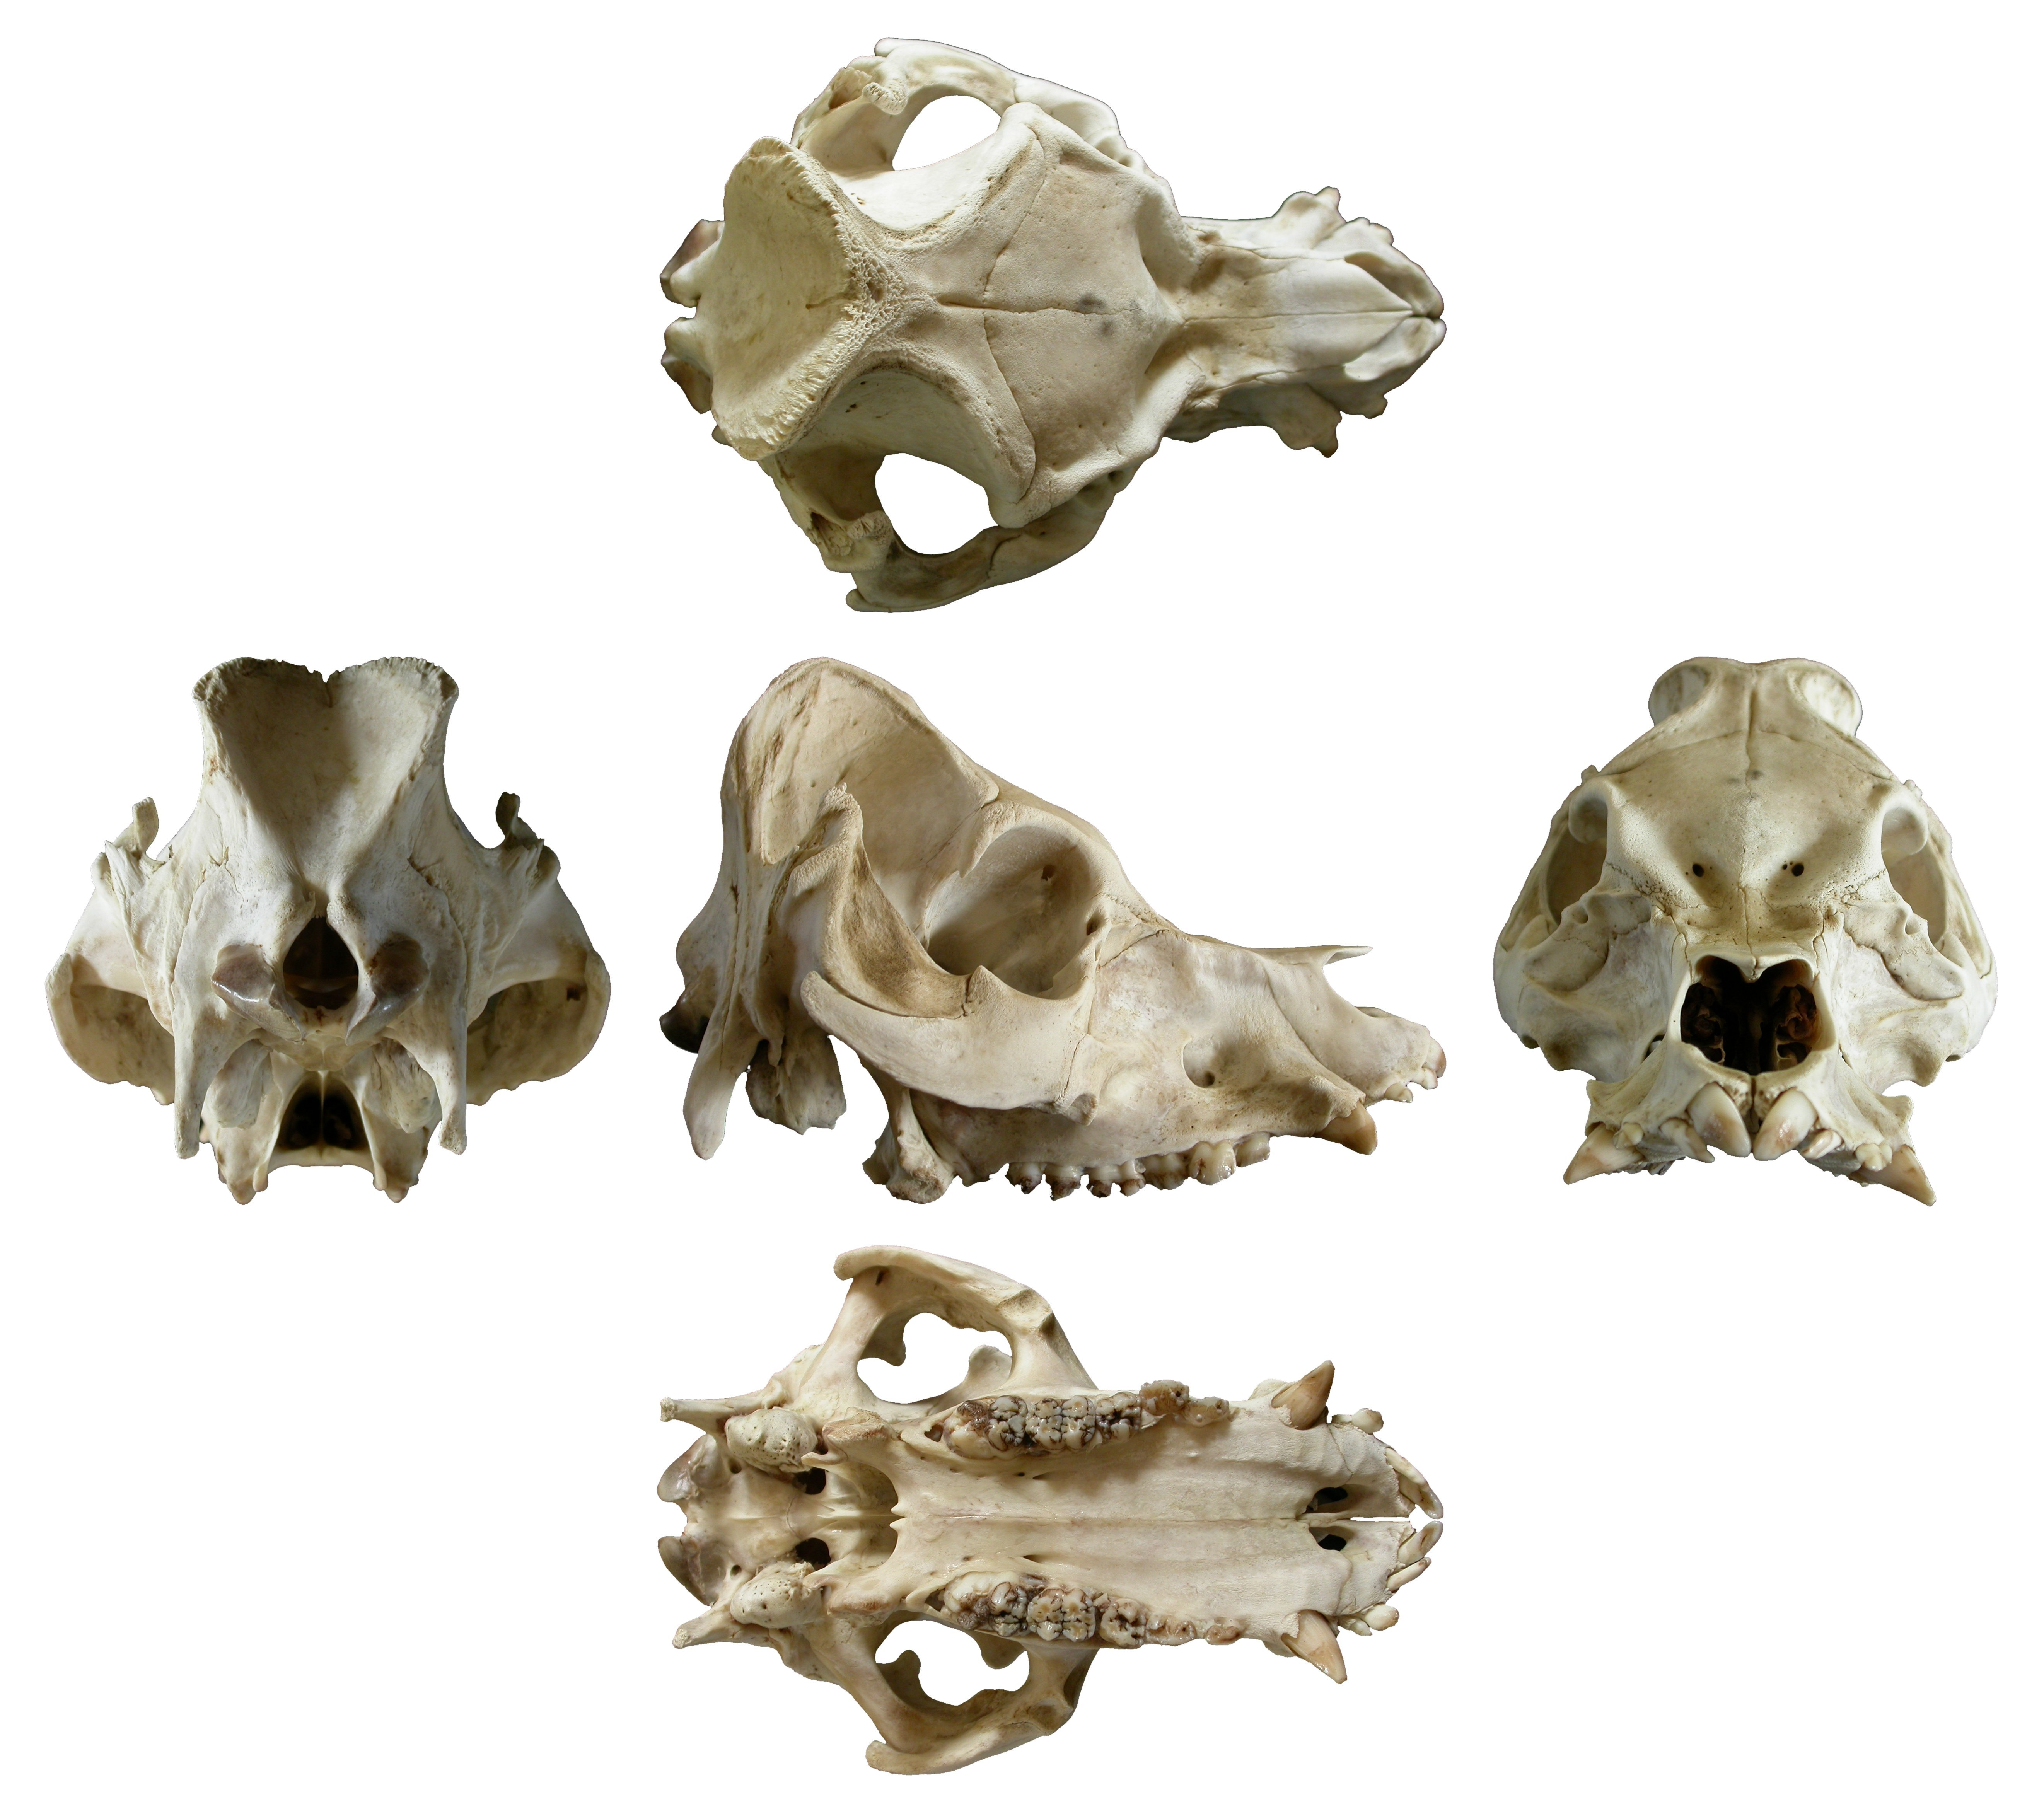 Here S That Sheep Skull Multiview You Ordered